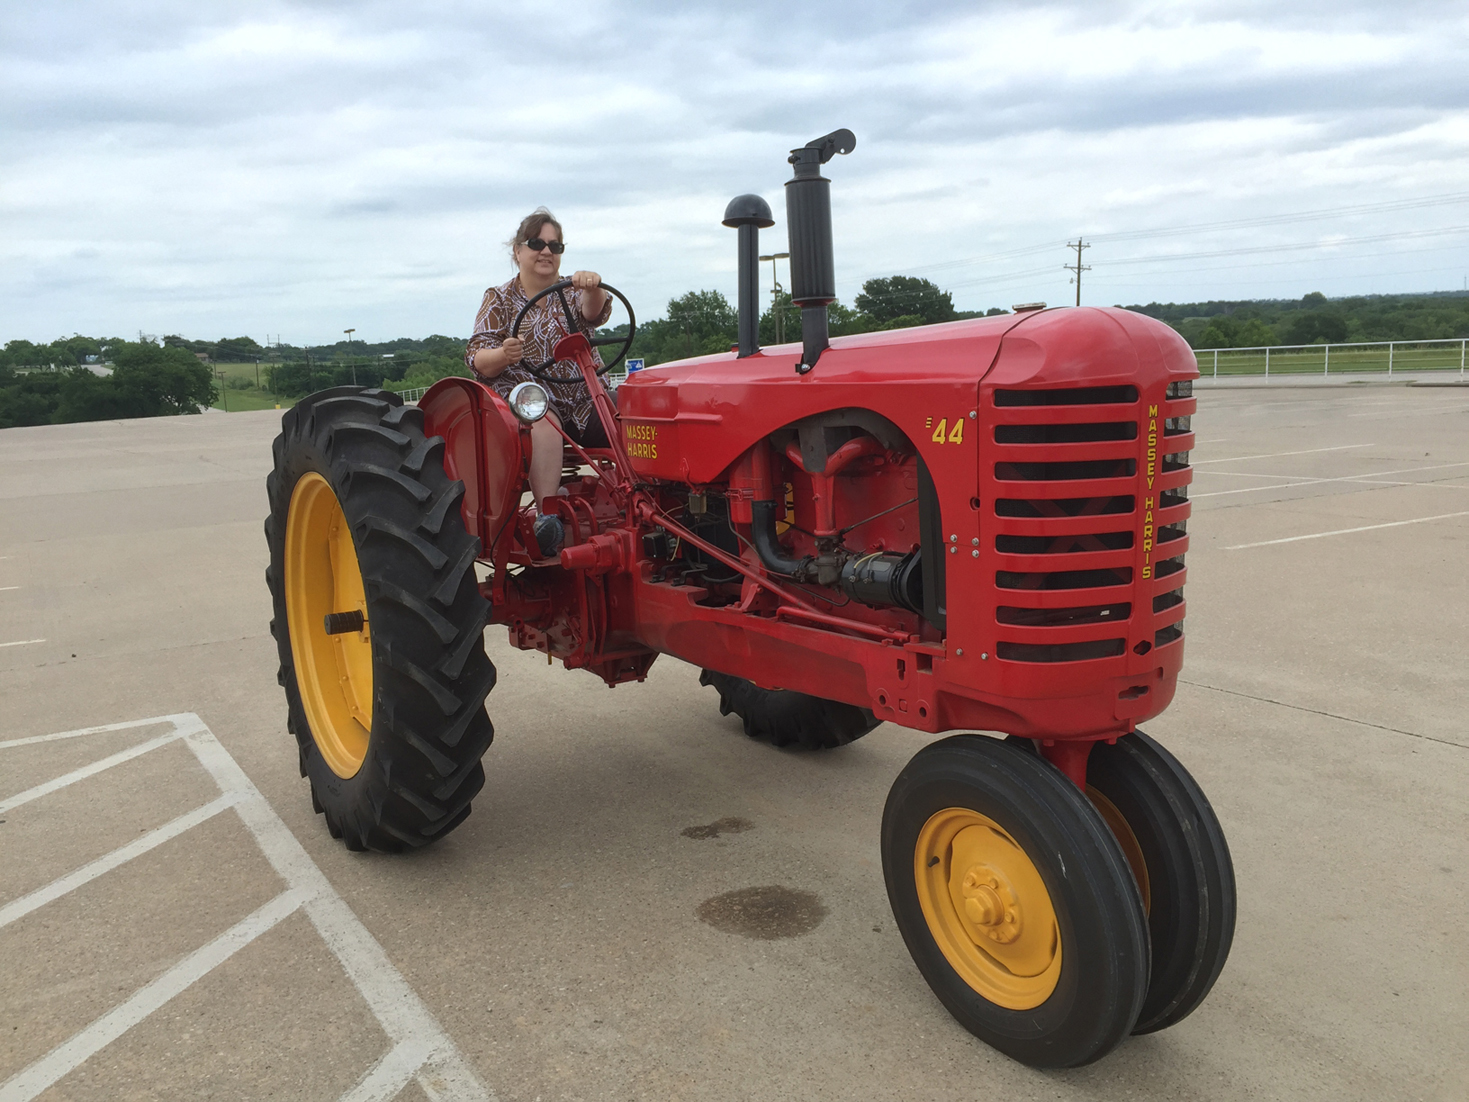 AnMarie on a tractor